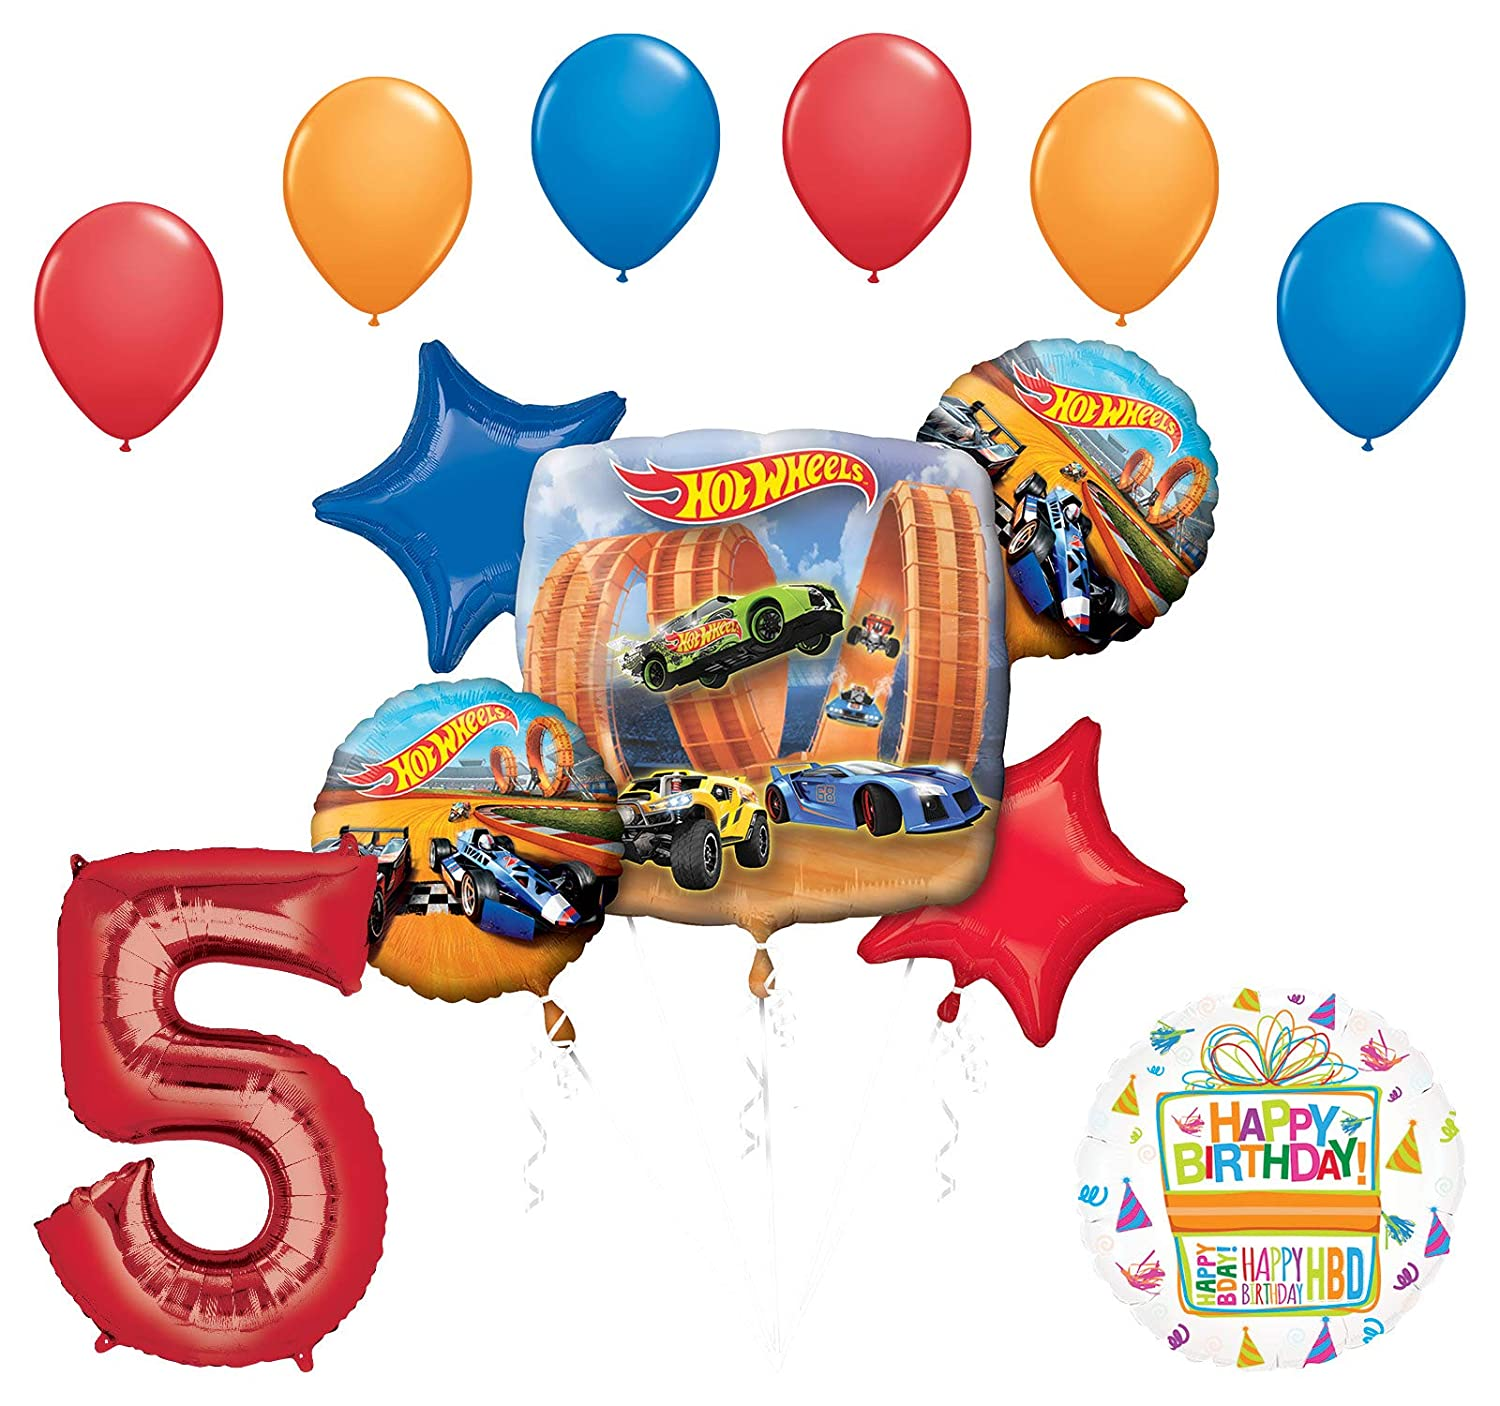 Amazon Mayflower Products Hot Wheels Party Supplies 5th Birthday Balloon Bouquet Decorations Toys Games